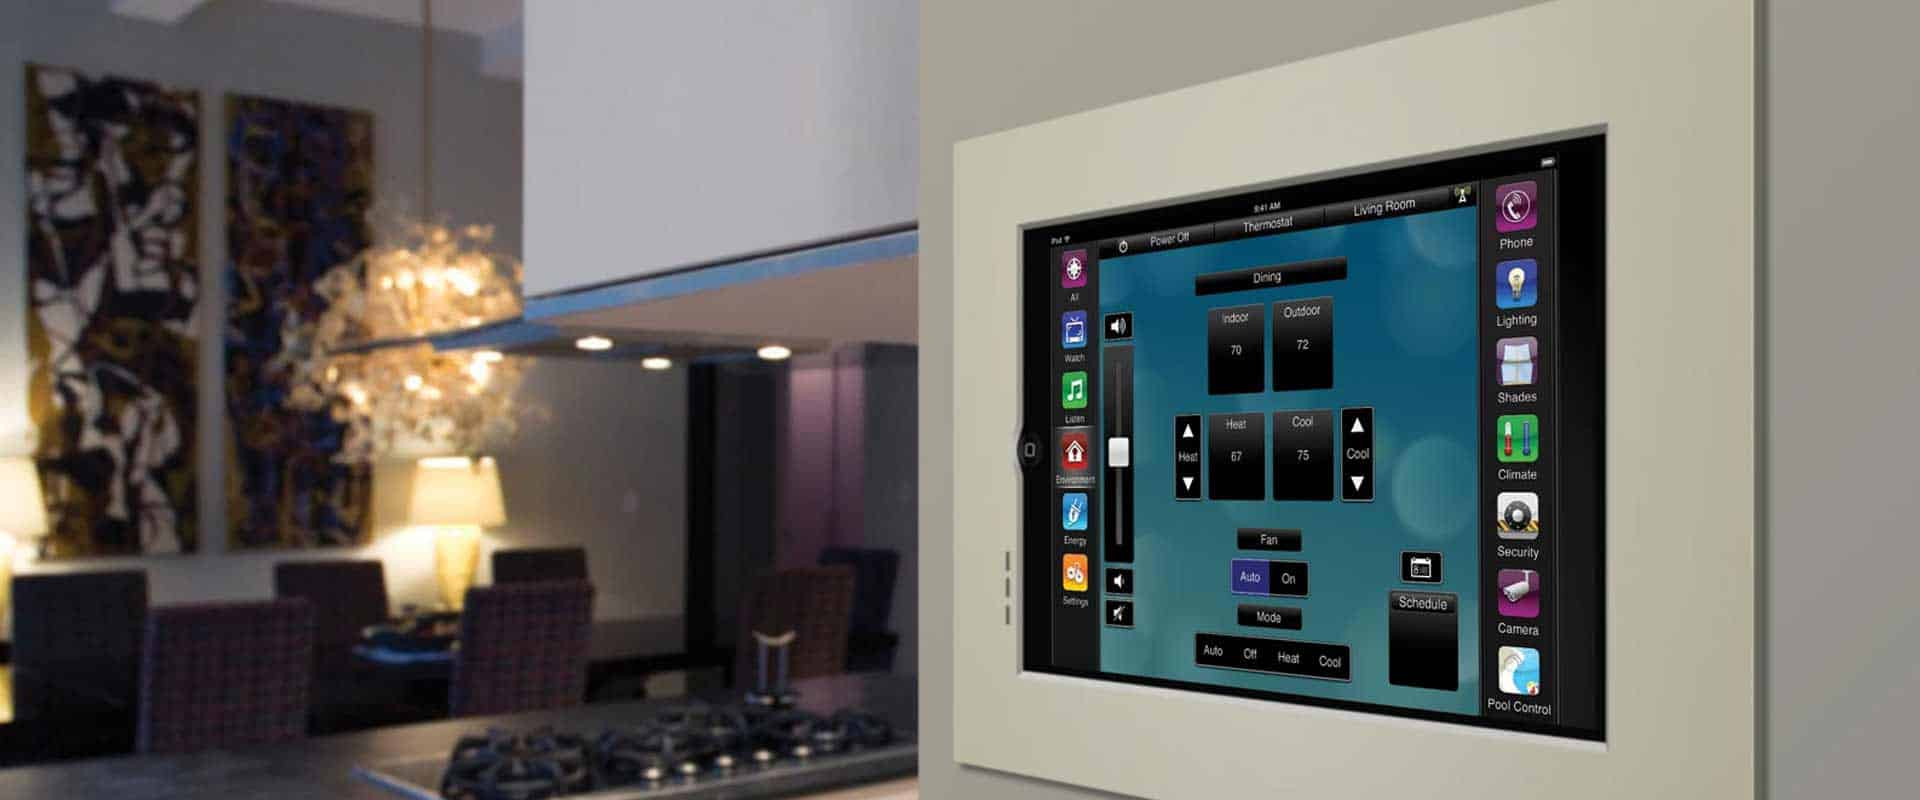 Home theater systems lutron lighting whole house audio nyc for Automated home system